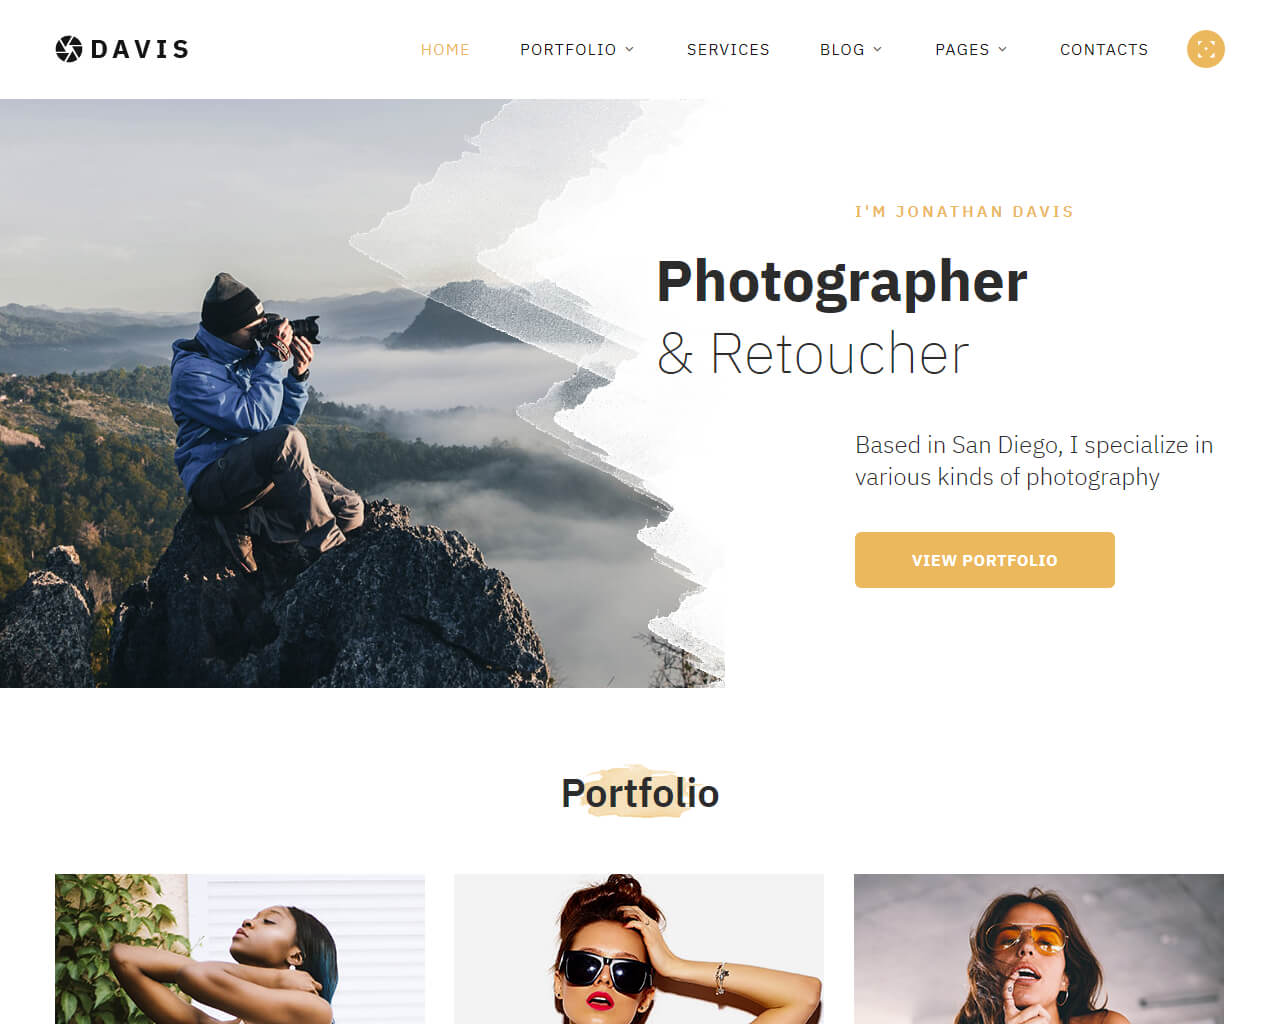 Davis Website Template